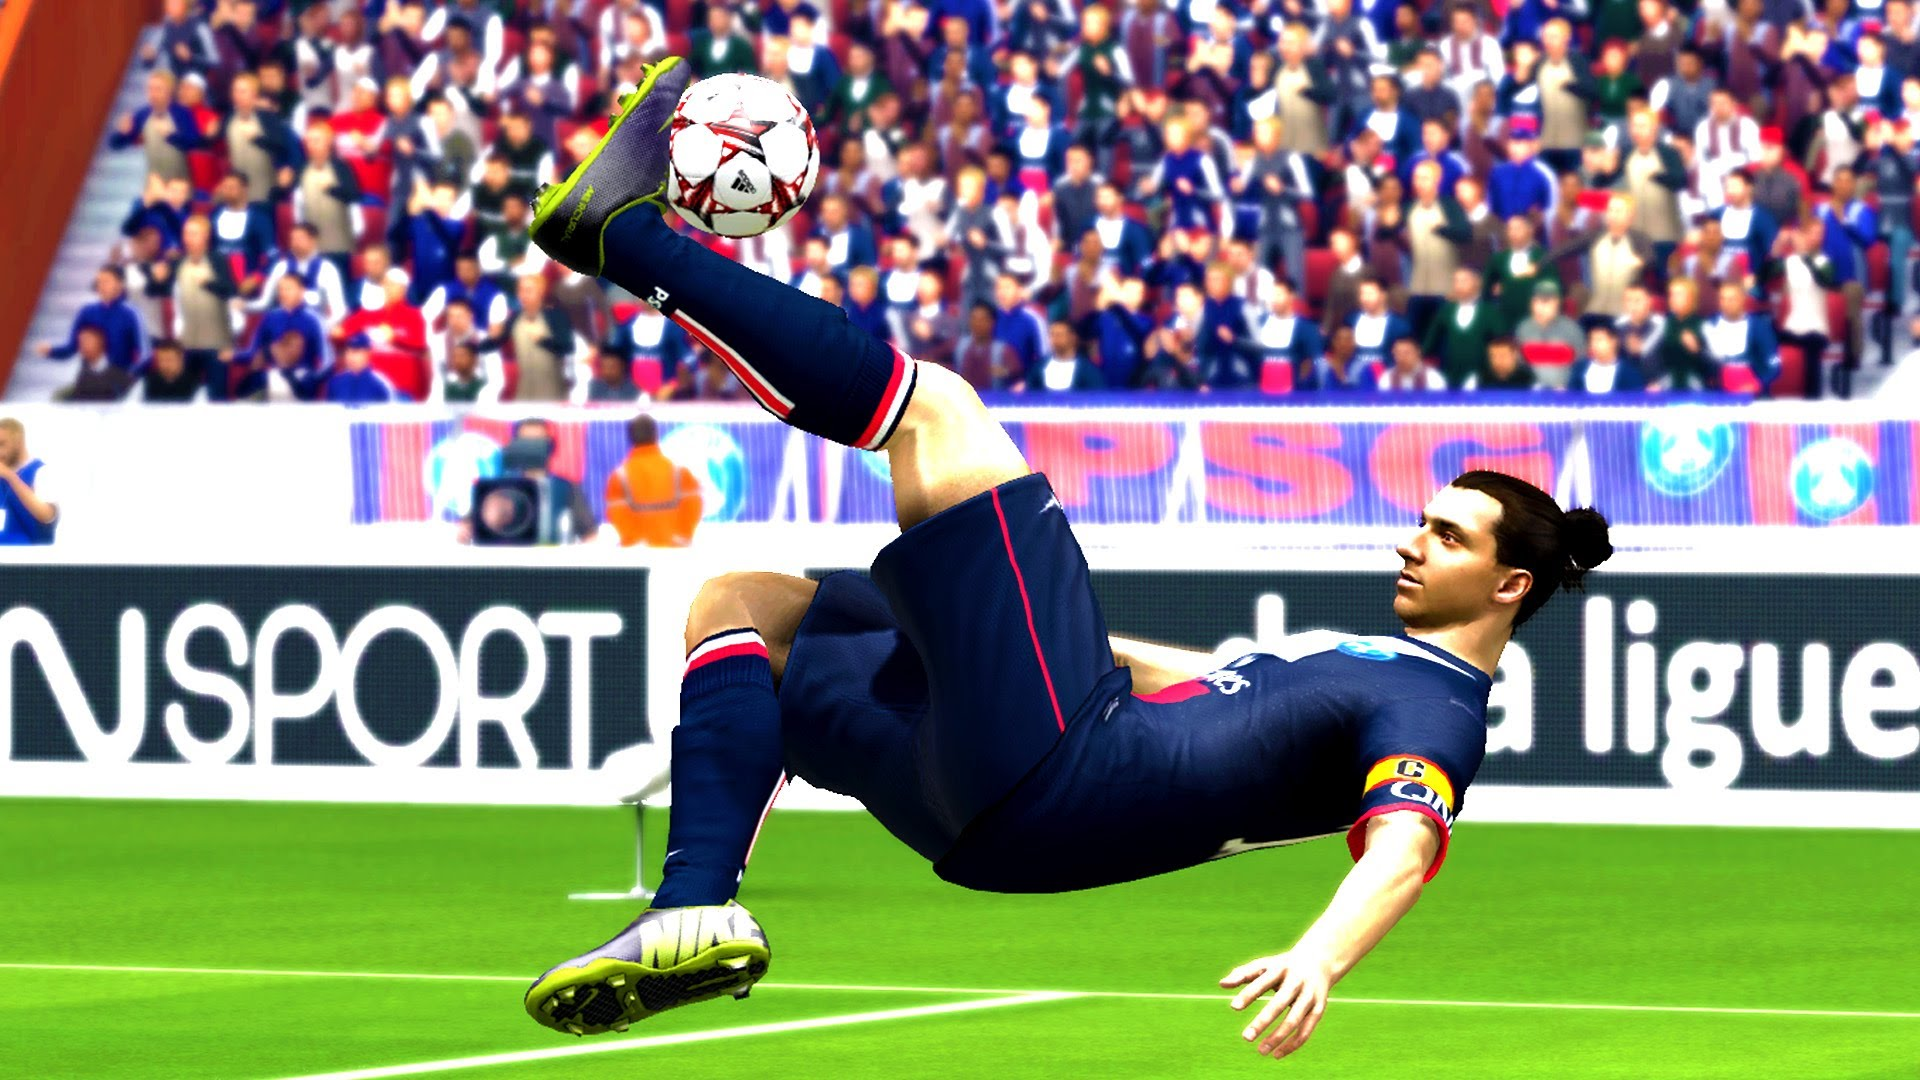 Fifa 14 full hd wallpaper and background image 1920x1080 id507709 video game fifa 14 wallpaper voltagebd Image collections